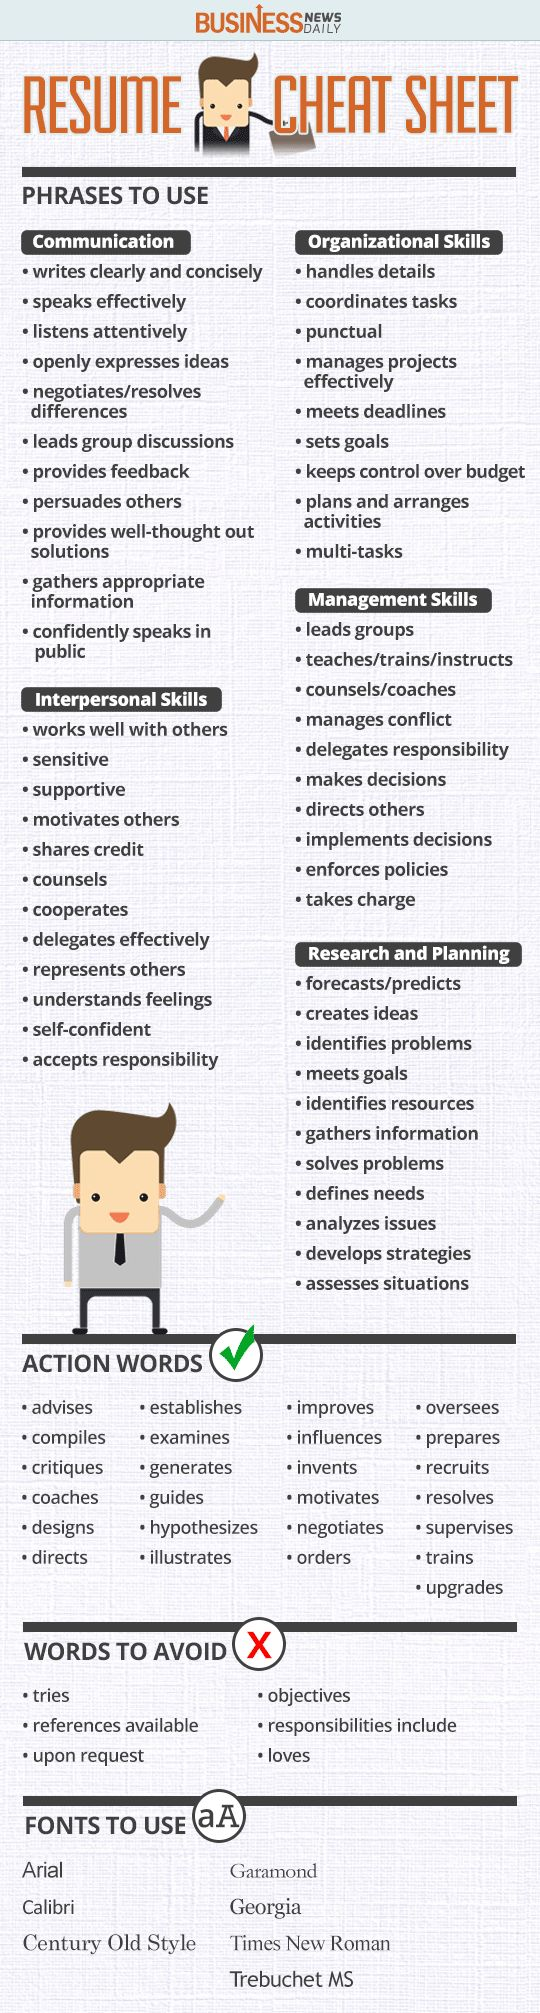 Opposenewapstandardsus  Prepossessing  Ideas About Resume On Pinterest  Cv Format Resume Cv And  With Hot Resume Cheat Sheet Infographic Andrews Almost Done With A Complete Unit On Employment Which With Delectable Action Verb Resume Also Do I Need A Cover Letter For A Resume In Addition Resume For Hotel Front Desk And Resume Word List As Well As Office Manager Resume Template Additionally Assistant Branch Manager Resume From Pinterestcom With Opposenewapstandardsus  Hot  Ideas About Resume On Pinterest  Cv Format Resume Cv And  With Delectable Resume Cheat Sheet Infographic Andrews Almost Done With A Complete Unit On Employment Which And Prepossessing Action Verb Resume Also Do I Need A Cover Letter For A Resume In Addition Resume For Hotel Front Desk From Pinterestcom